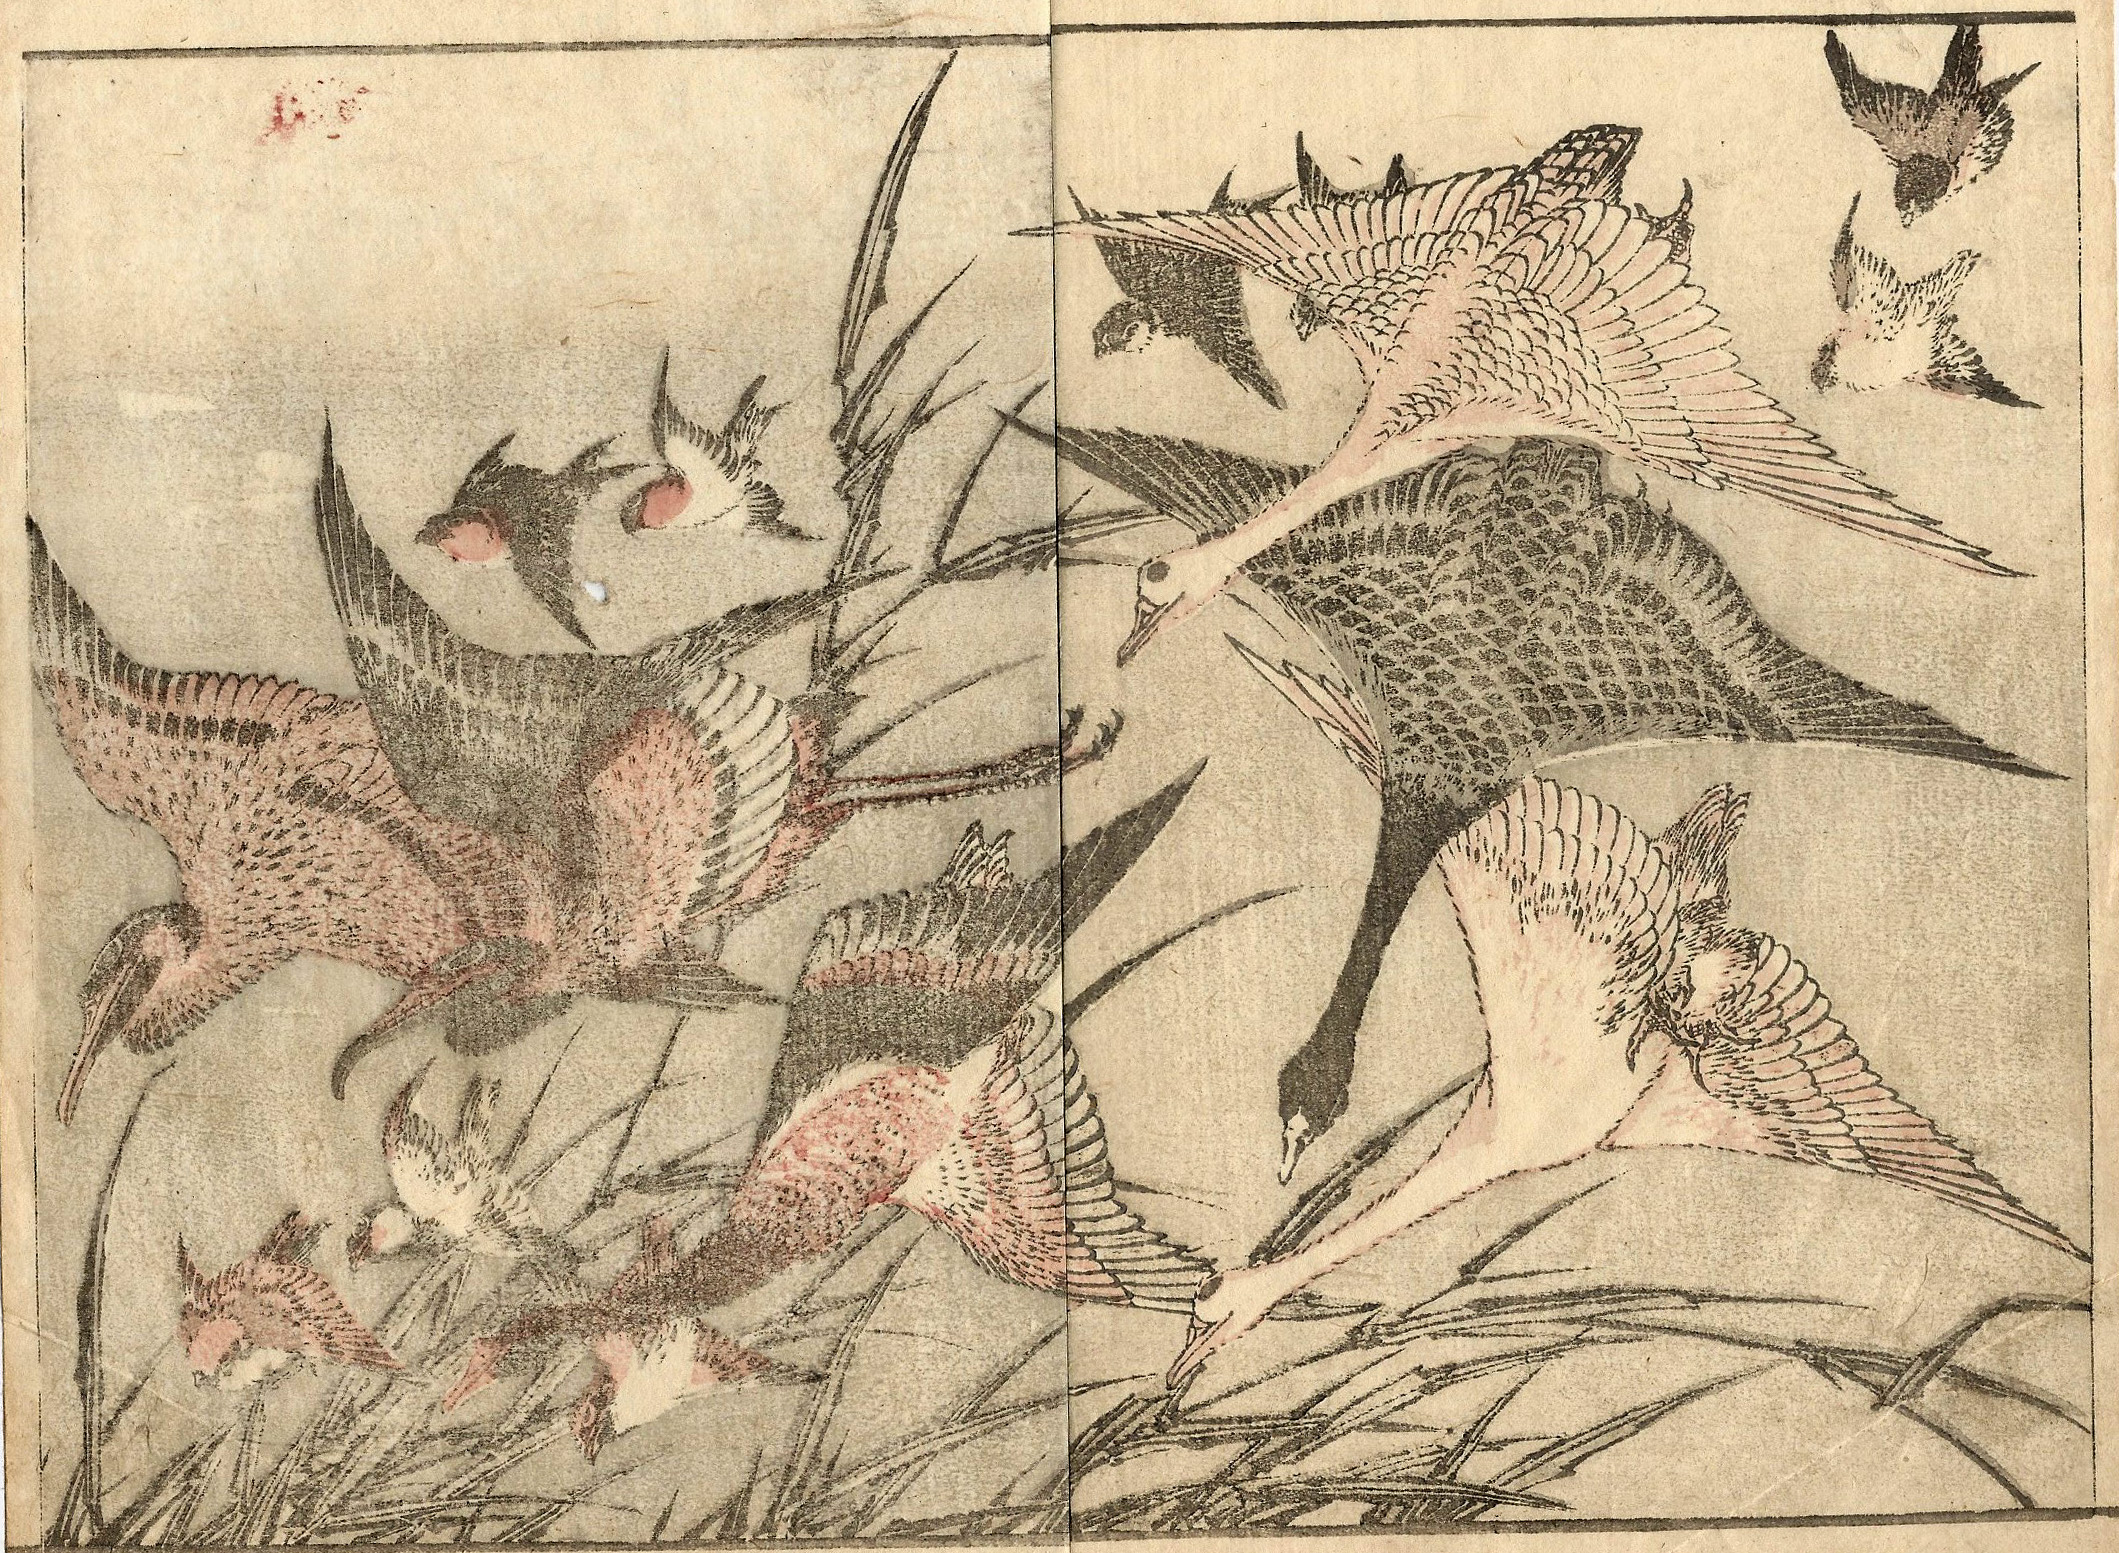 Katsushika HOKUSAI (Giappone, 1760 – 1849) – UCCELLI IN VOLO TRA LE CANNE